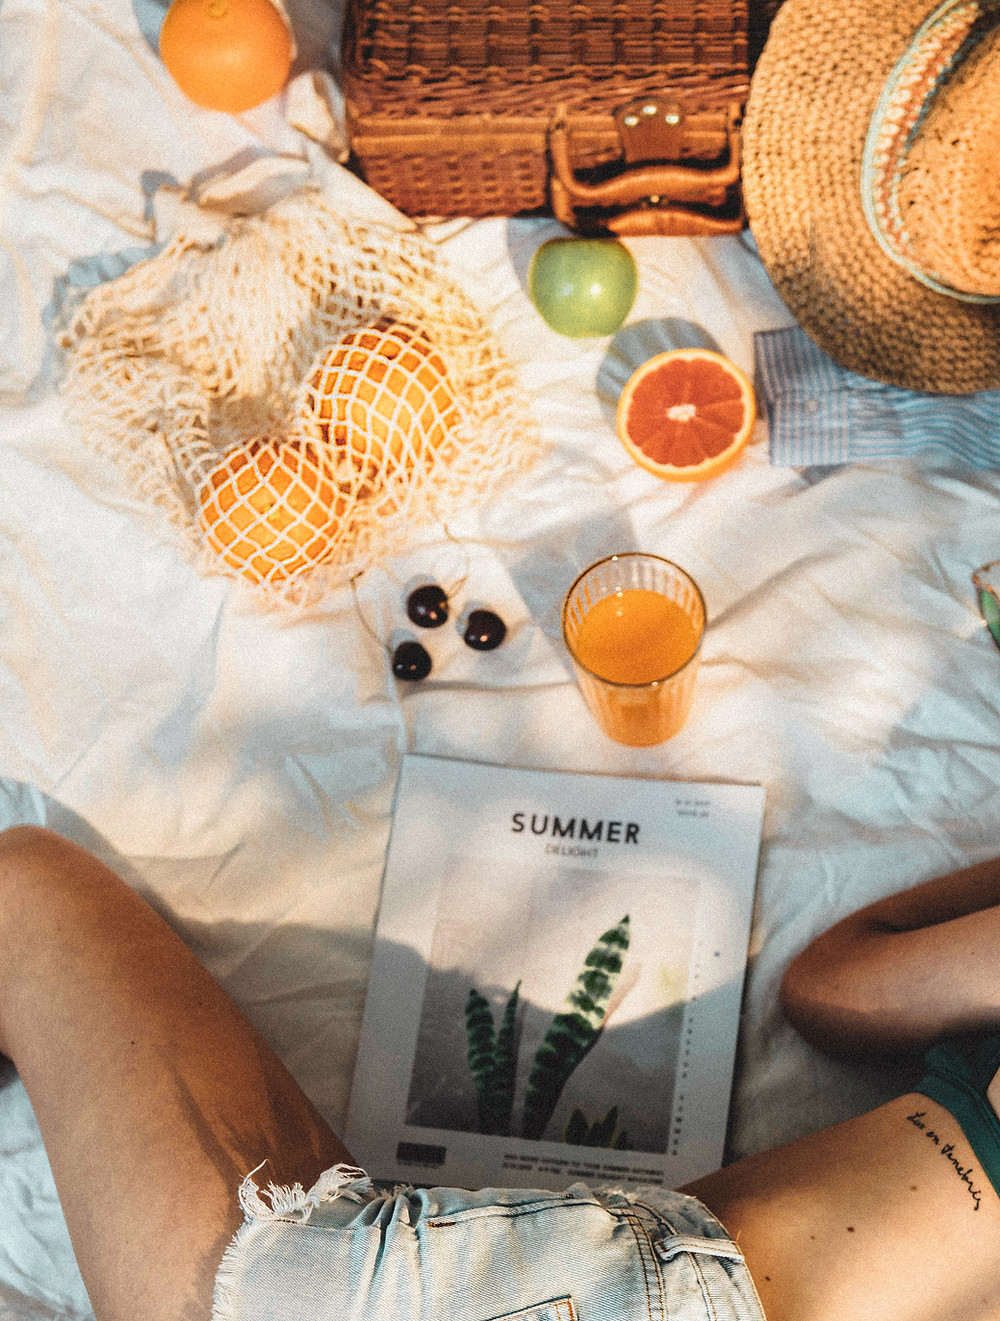 How to eat healthy on vacation without restricting yourself